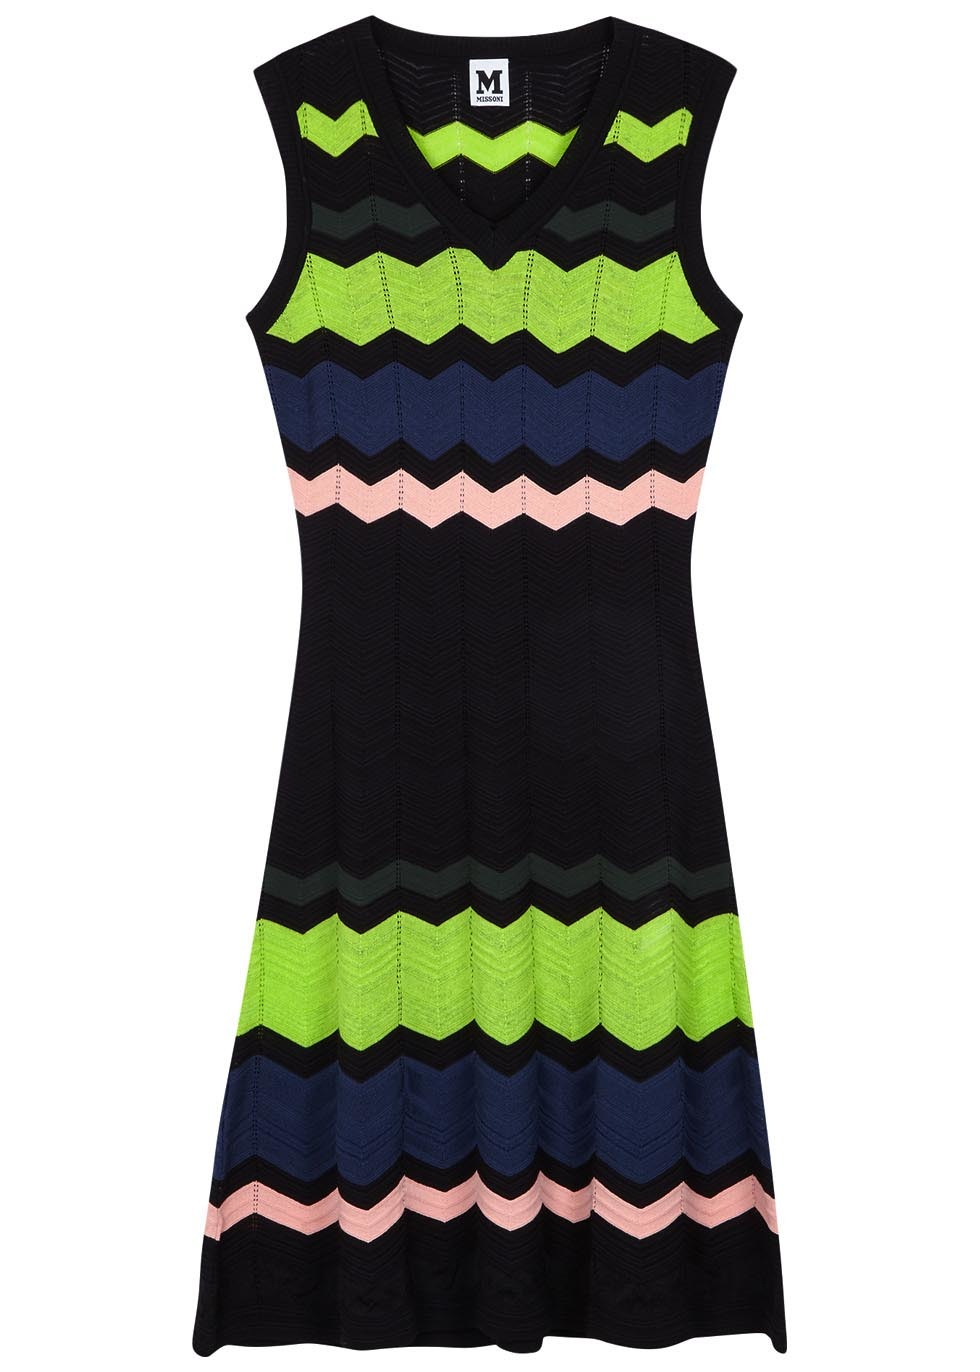 Colour Block Zigzag Fine Knit Dress - style: jumper dress; neckline: v-neck; pattern: horizontal stripes; sleeve style: sleeveless; secondary colour: lime; predominant colour: mid grey; occasions: casual; length: just above the knee; fit: body skimming; fibres: cotton - mix; sleeve length: sleeveless; pattern type: fabric; texture group: other - light to midweight; multicoloured: multicoloured; season: s/s 2016; wardrobe: highlight